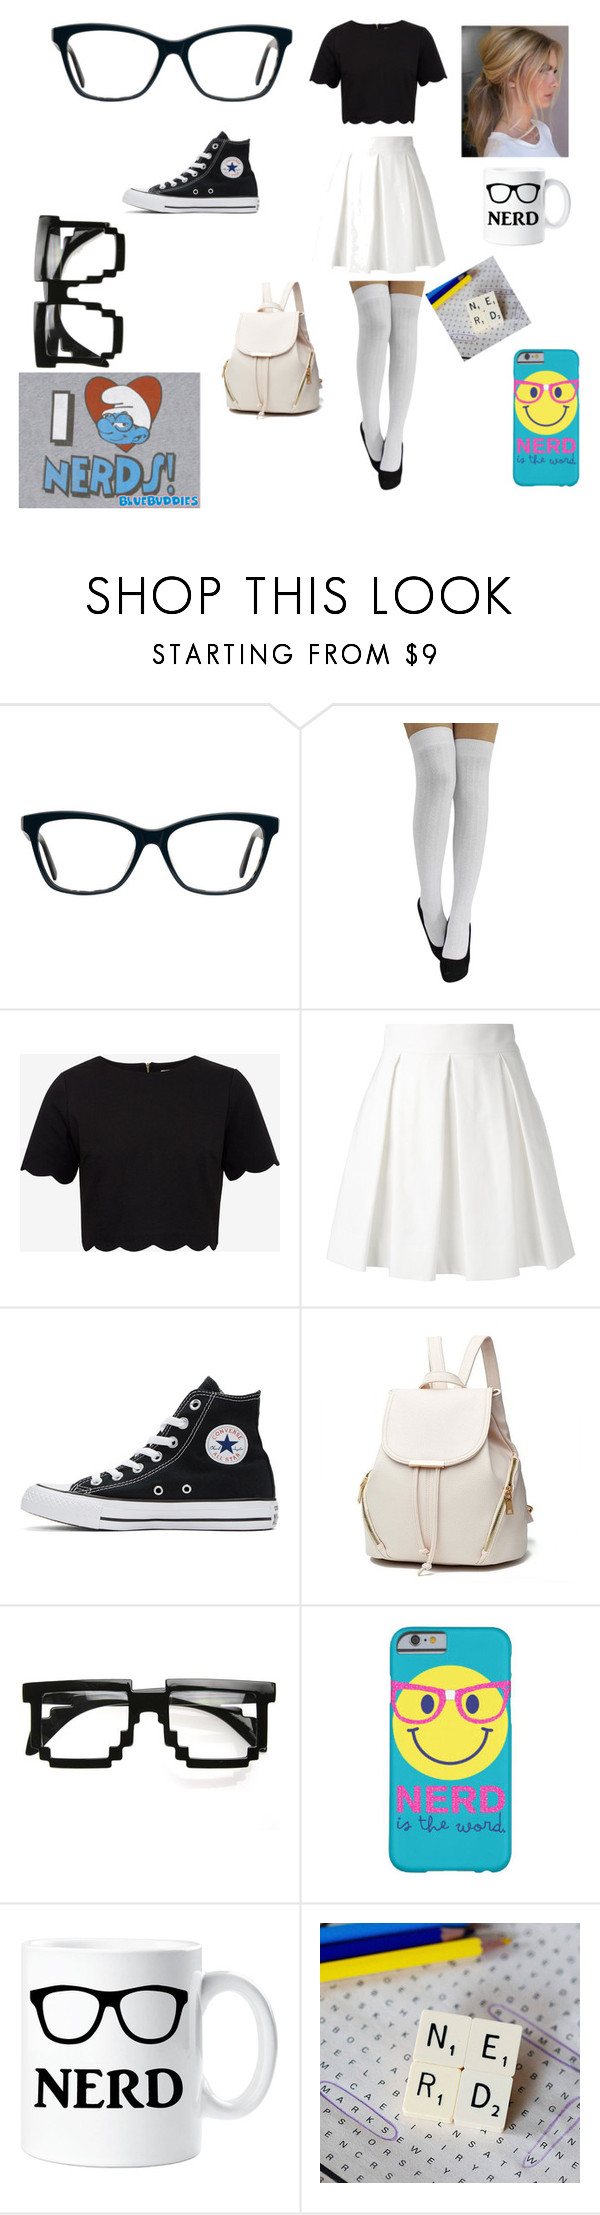 """""""nerdie"""" by ilovee922 on Polyvore featuring interior, interiors, interior design, home, home decor, interior decorating, Ted Baker, Boutique Moschino, Converse and ZeroUV"""